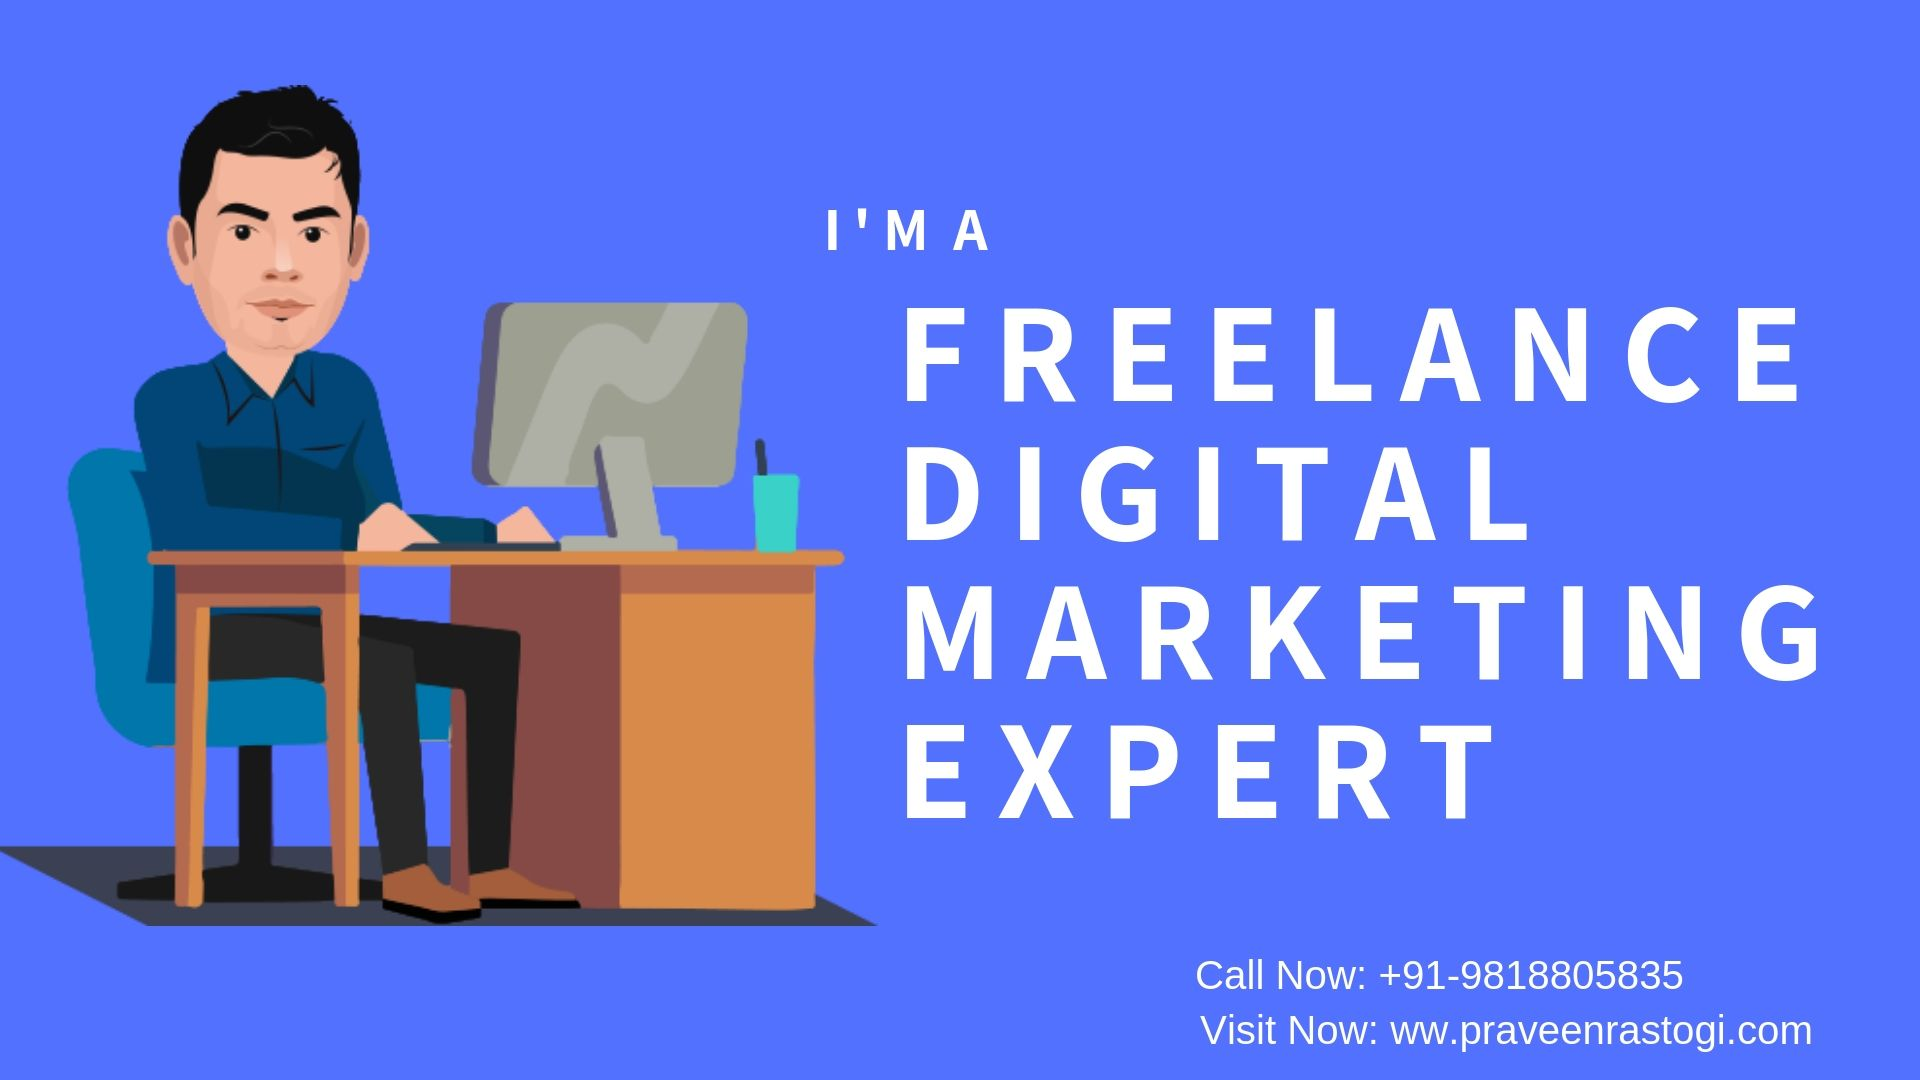 Freelance Digital Marketing Expert USA - Hire Expert SEO